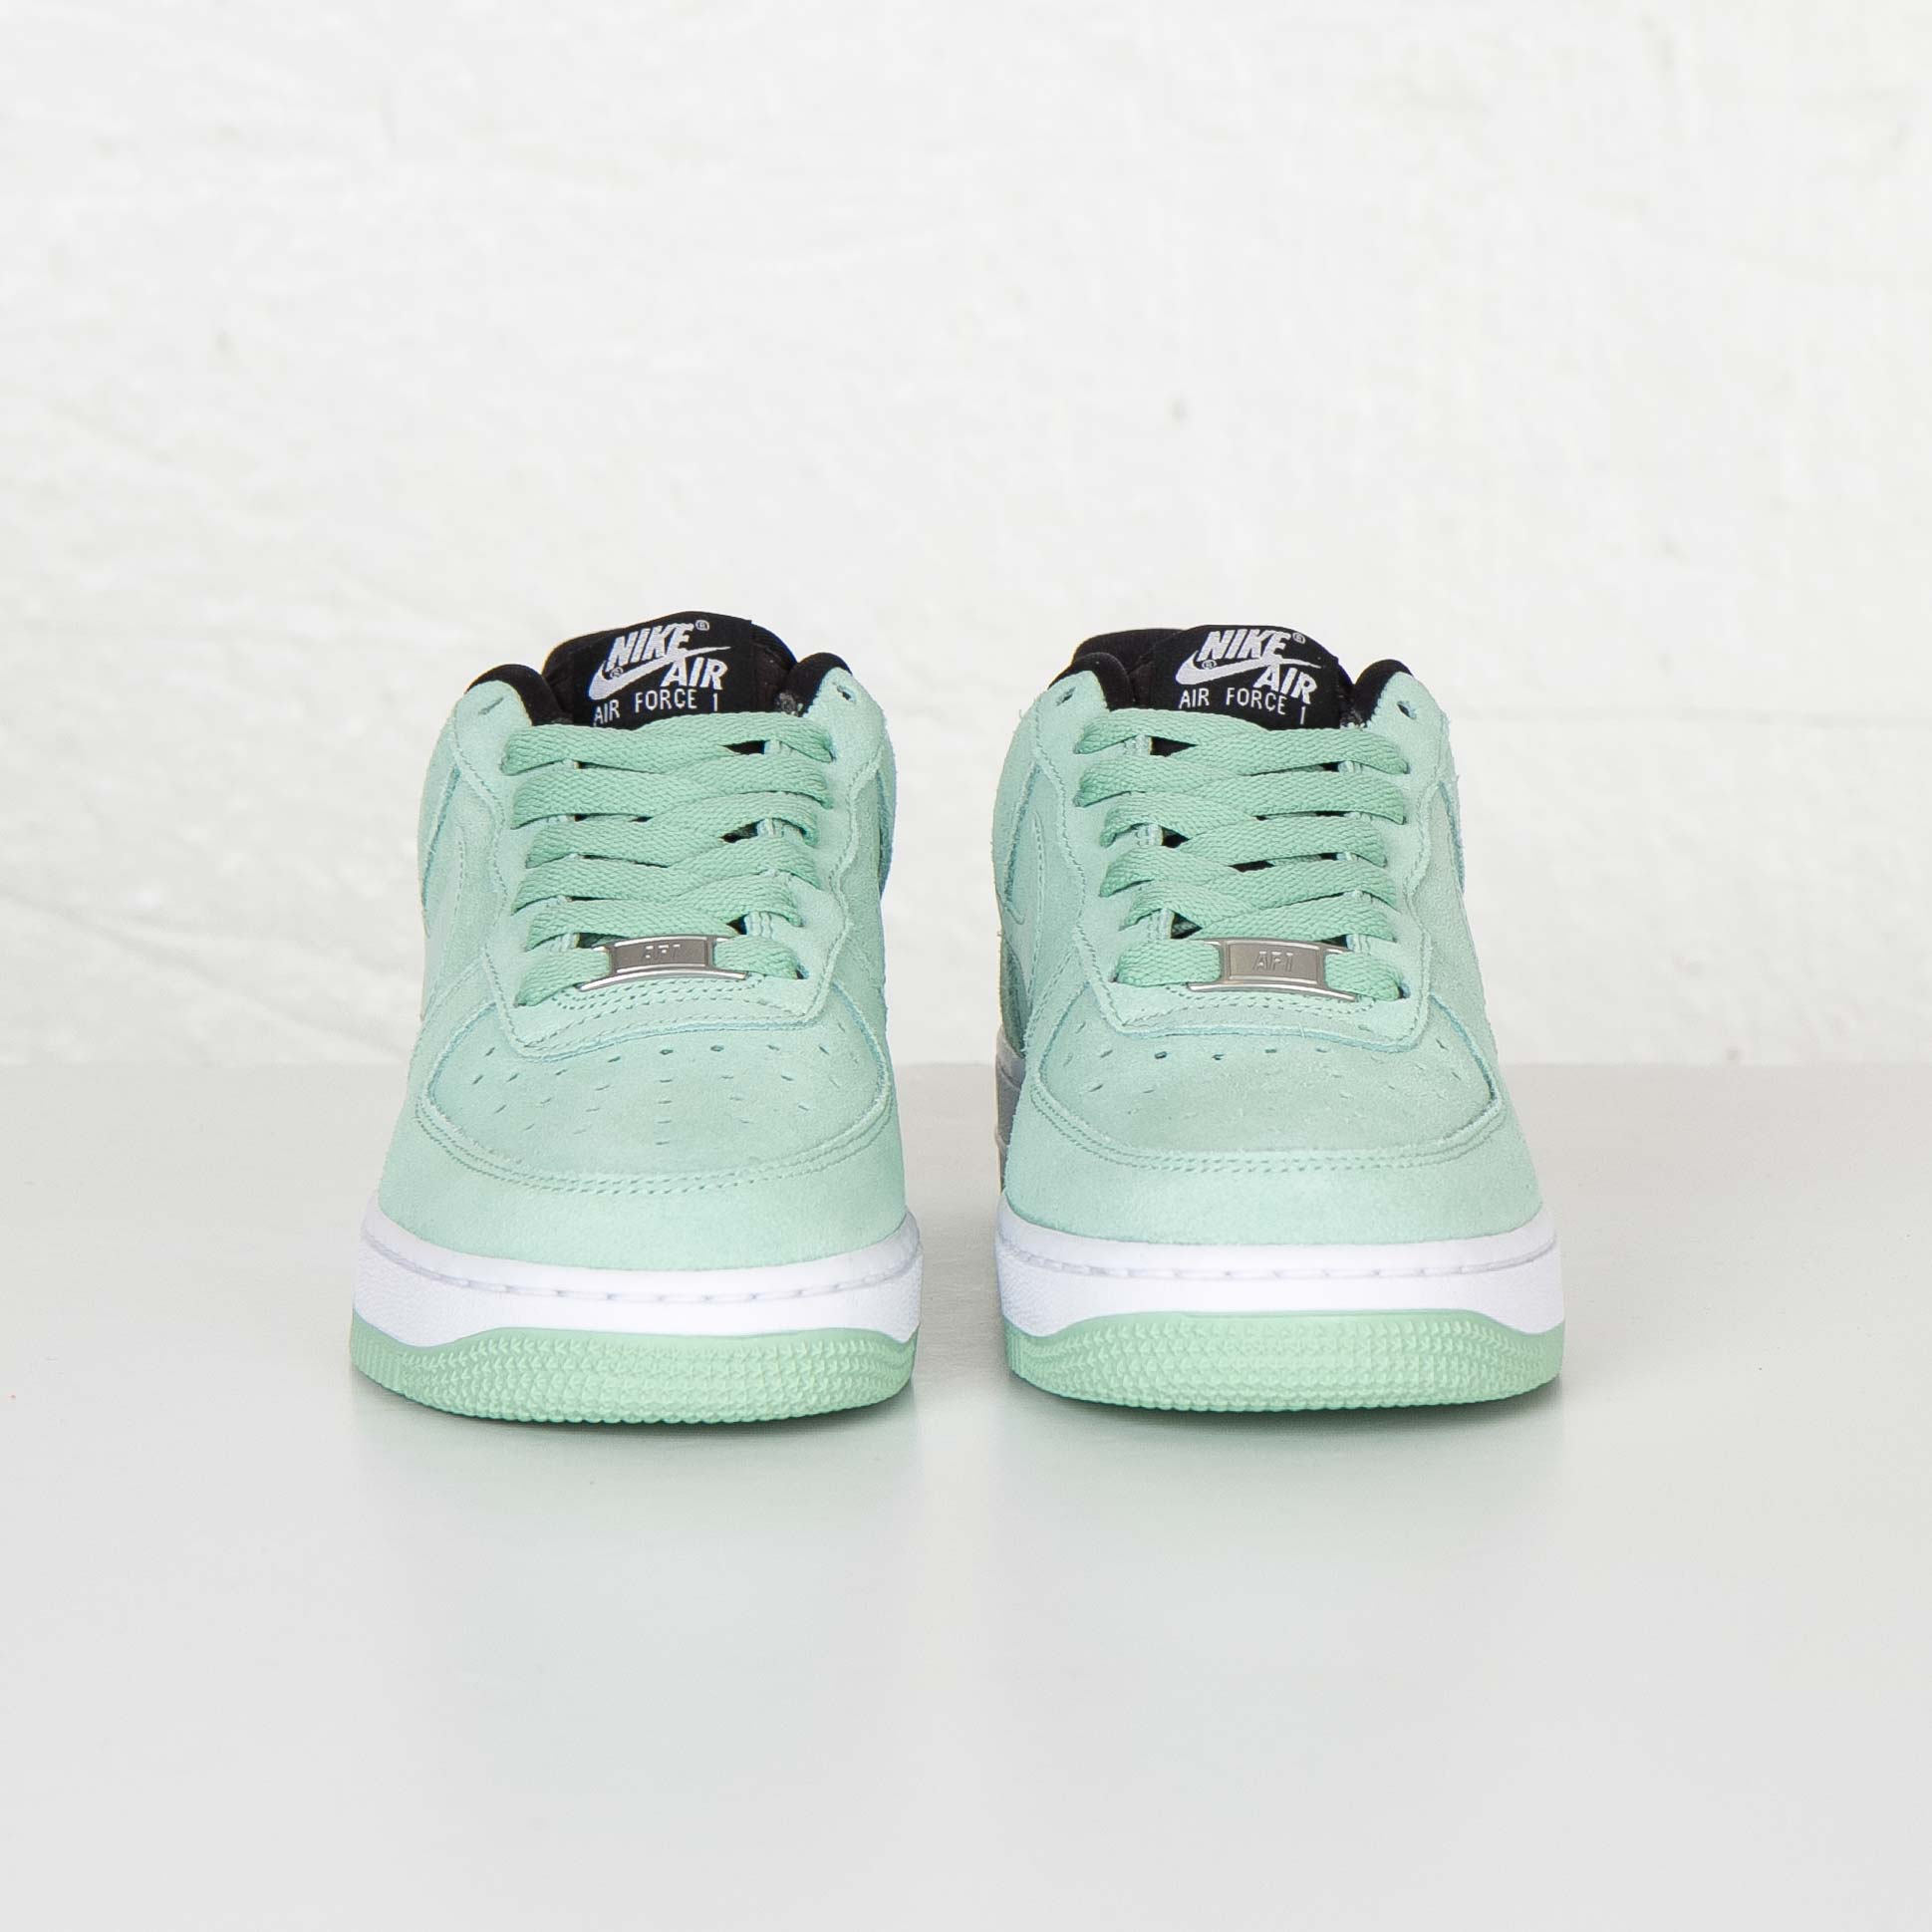 Nike W Air Force 1 07 Seasonal 818594 300 Sneakersnstuff